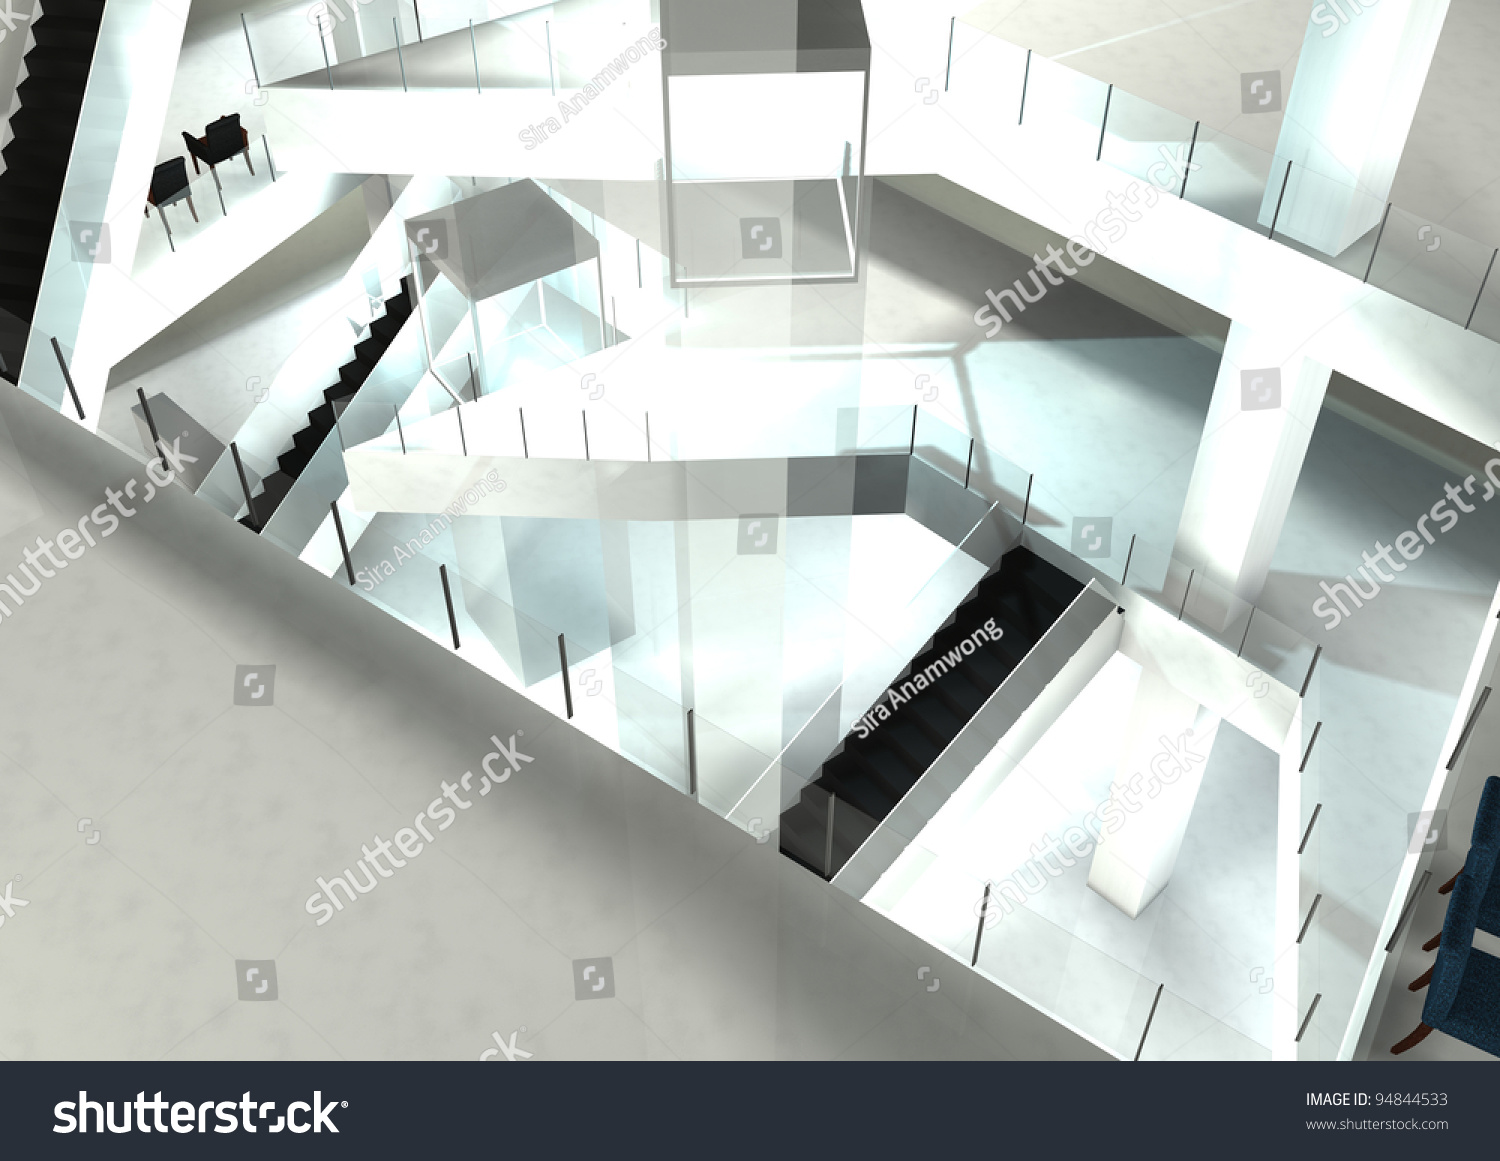 Mall Interior Designillustrated 3 D Render Show Stock Illustration     Mall interior design illustrated 3d render show open well